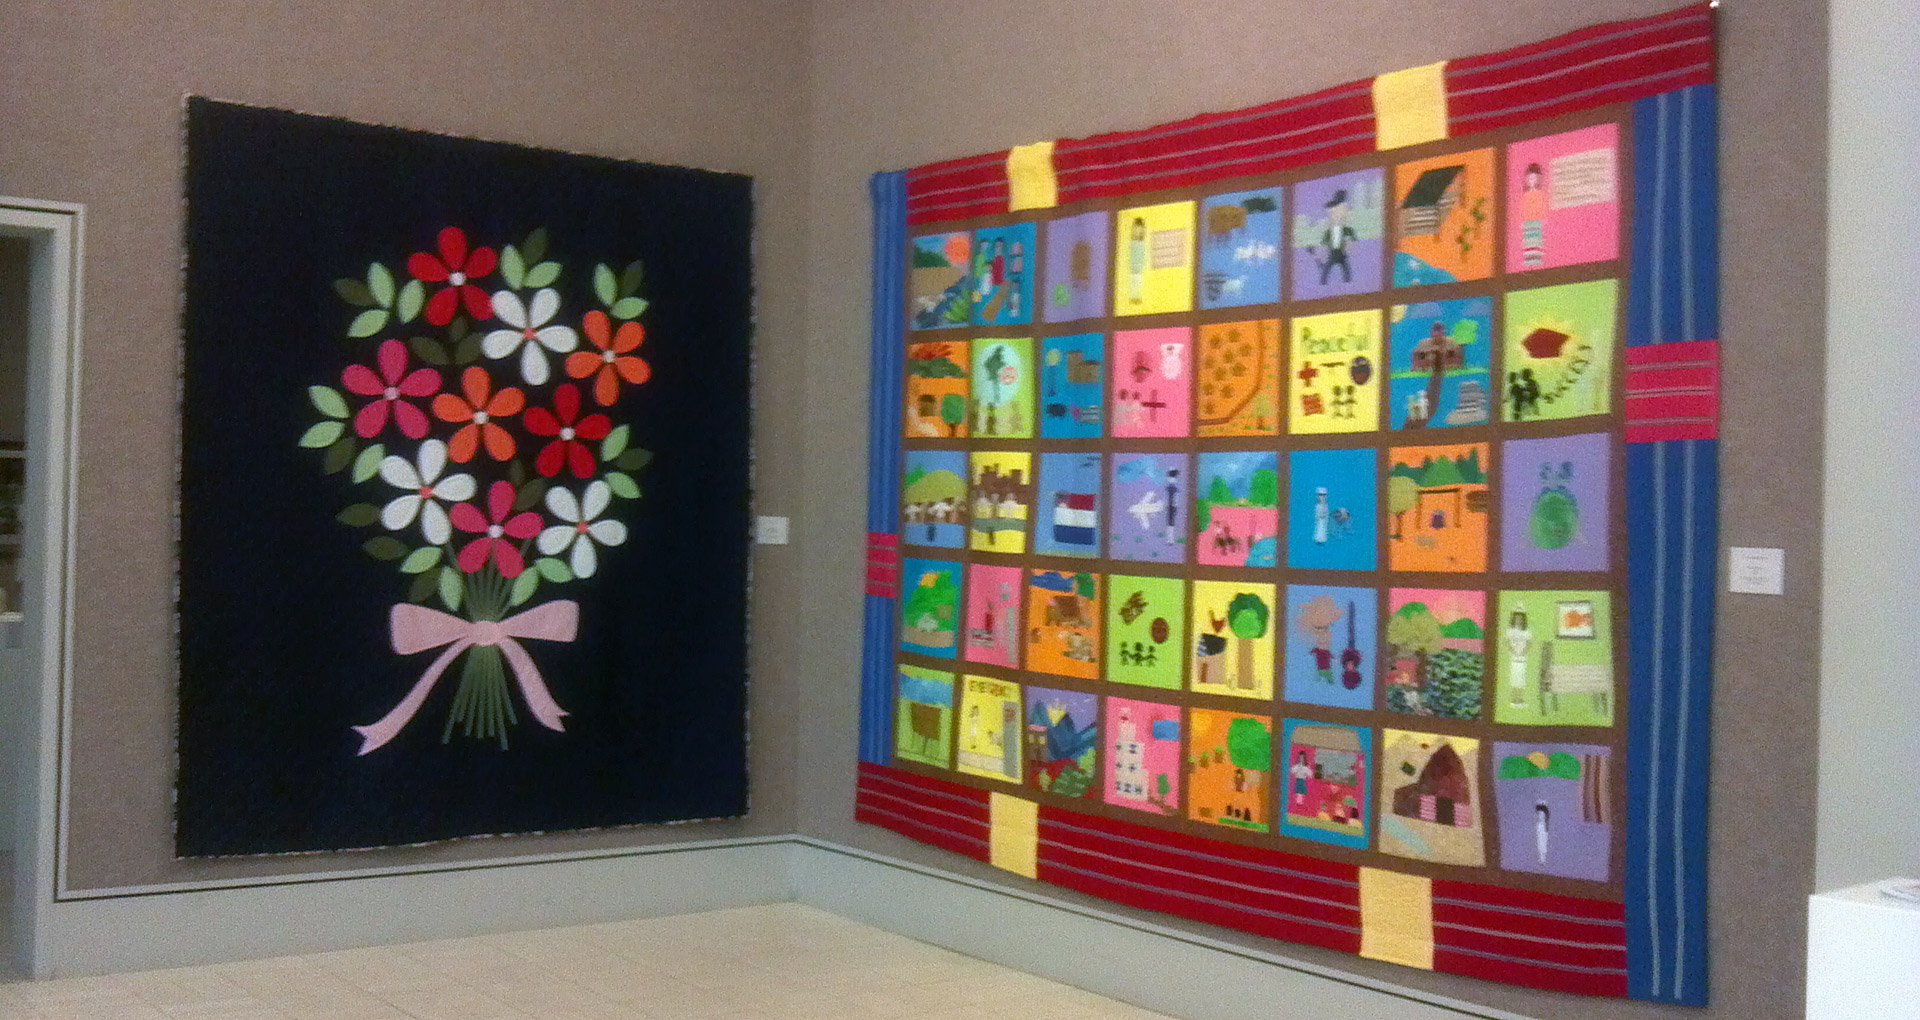 Quilt on display at Museum of Nebraska Art (MONA) in Kearney, NE. Courtesy Leslie Levy, International Quilt Study Center & Museum